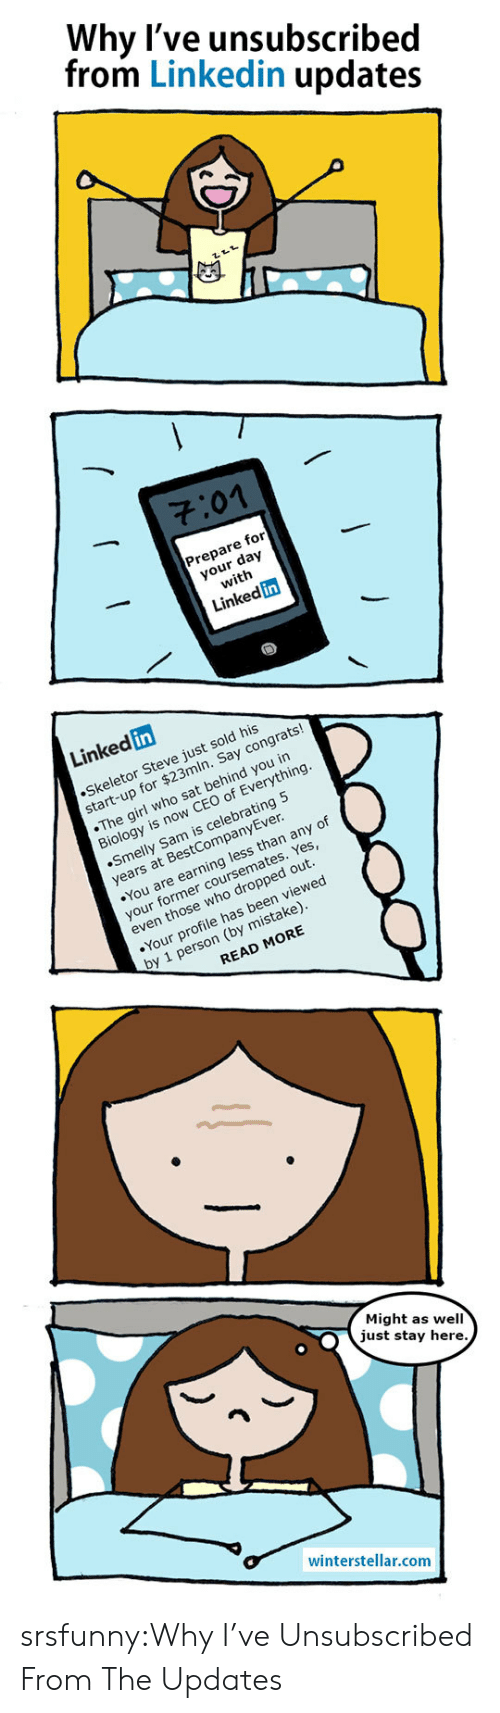 By Mistake: Why l've unsubscribed  from Linkedin updates  701  Prepare for  your day  with  Linked in  Linked in  Skeletor Steve just sold his  start-up for $23mln. Say congrats!  The girl who sat behind you in  Biology is now CEO of Everything  Smelly Sam is celebrating 5  years at BestCompanyEver  You are earning less than any of  your former coursemates. Yes  even those who dropped out  Your profile has been viewed  by 1 person (by mistake)  READ MORE  Might as well  just stay here  winterstellar.comm srsfunny:Why I've Unsubscribed From The Updates